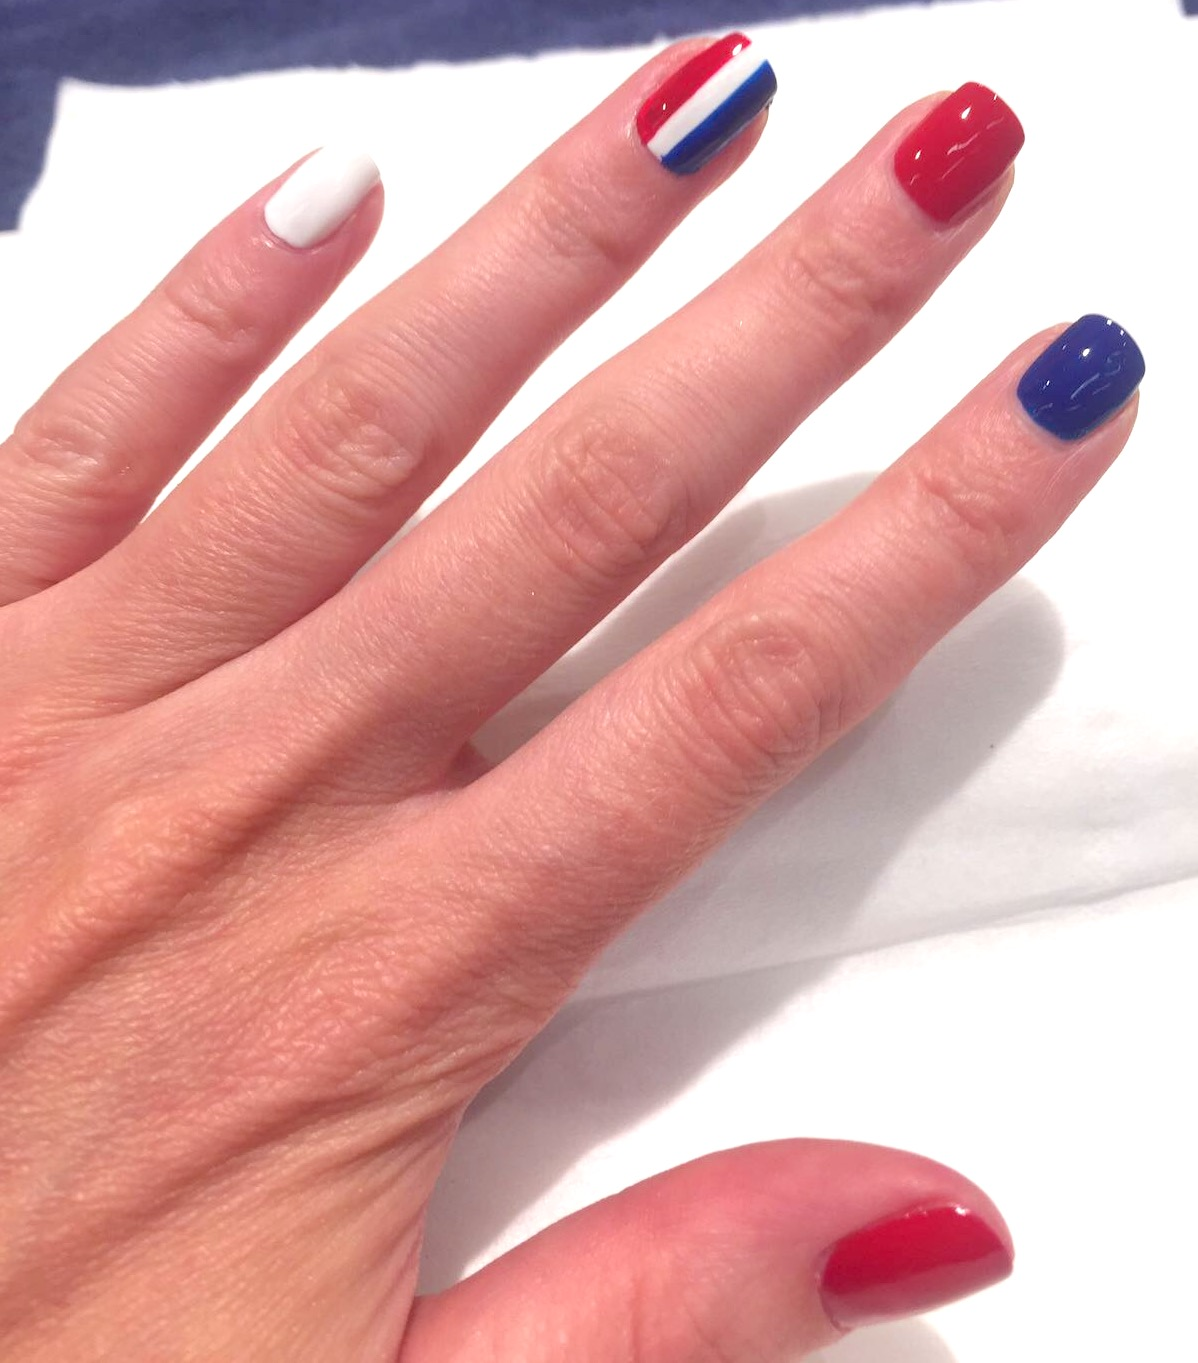 nail art in London Archives - Nails by Mets Nails by Mets